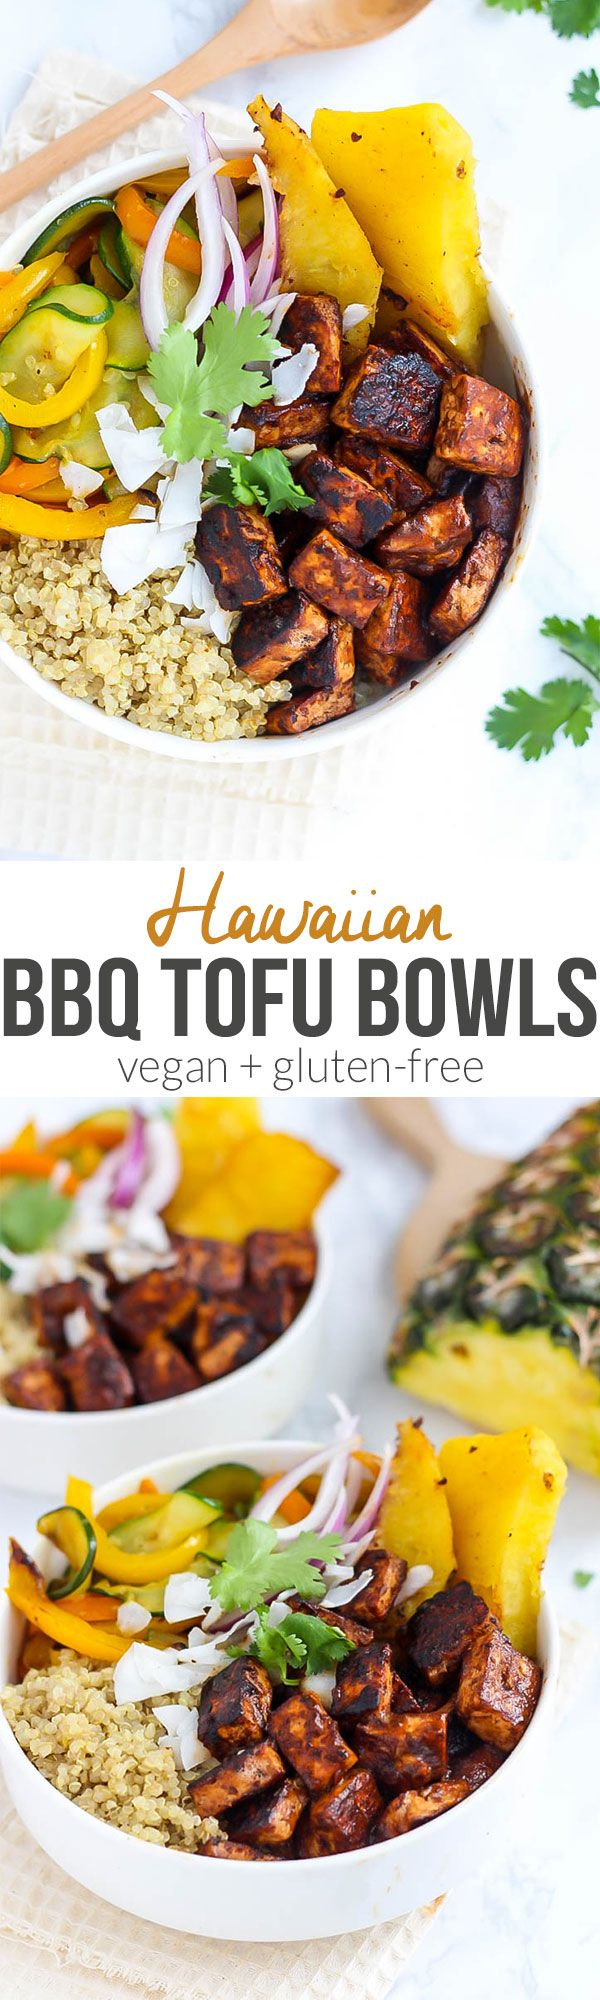 108 best healthy vegetarian lifestyle images on pinterest healthy hawaiian bbq tofu bowls forumfinder Images